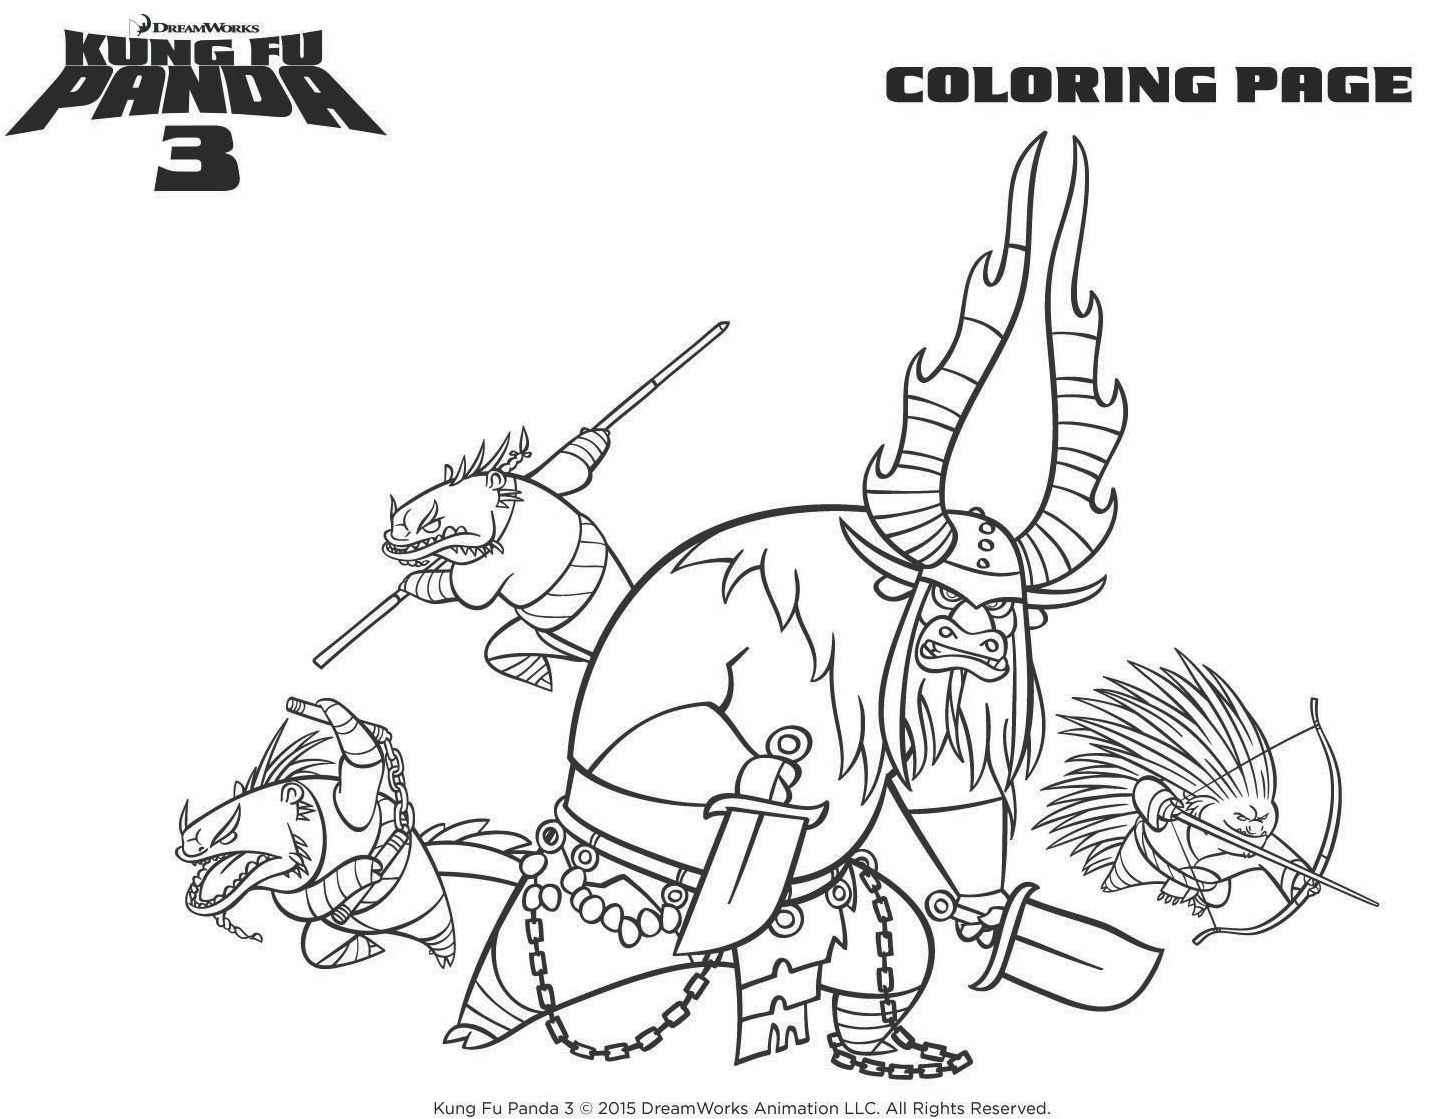 kung fu panda 3 coloring pages Kung Fu Panda Coloring Page | Printable Coloring Pages, Crafts  kung fu panda 3 coloring pages